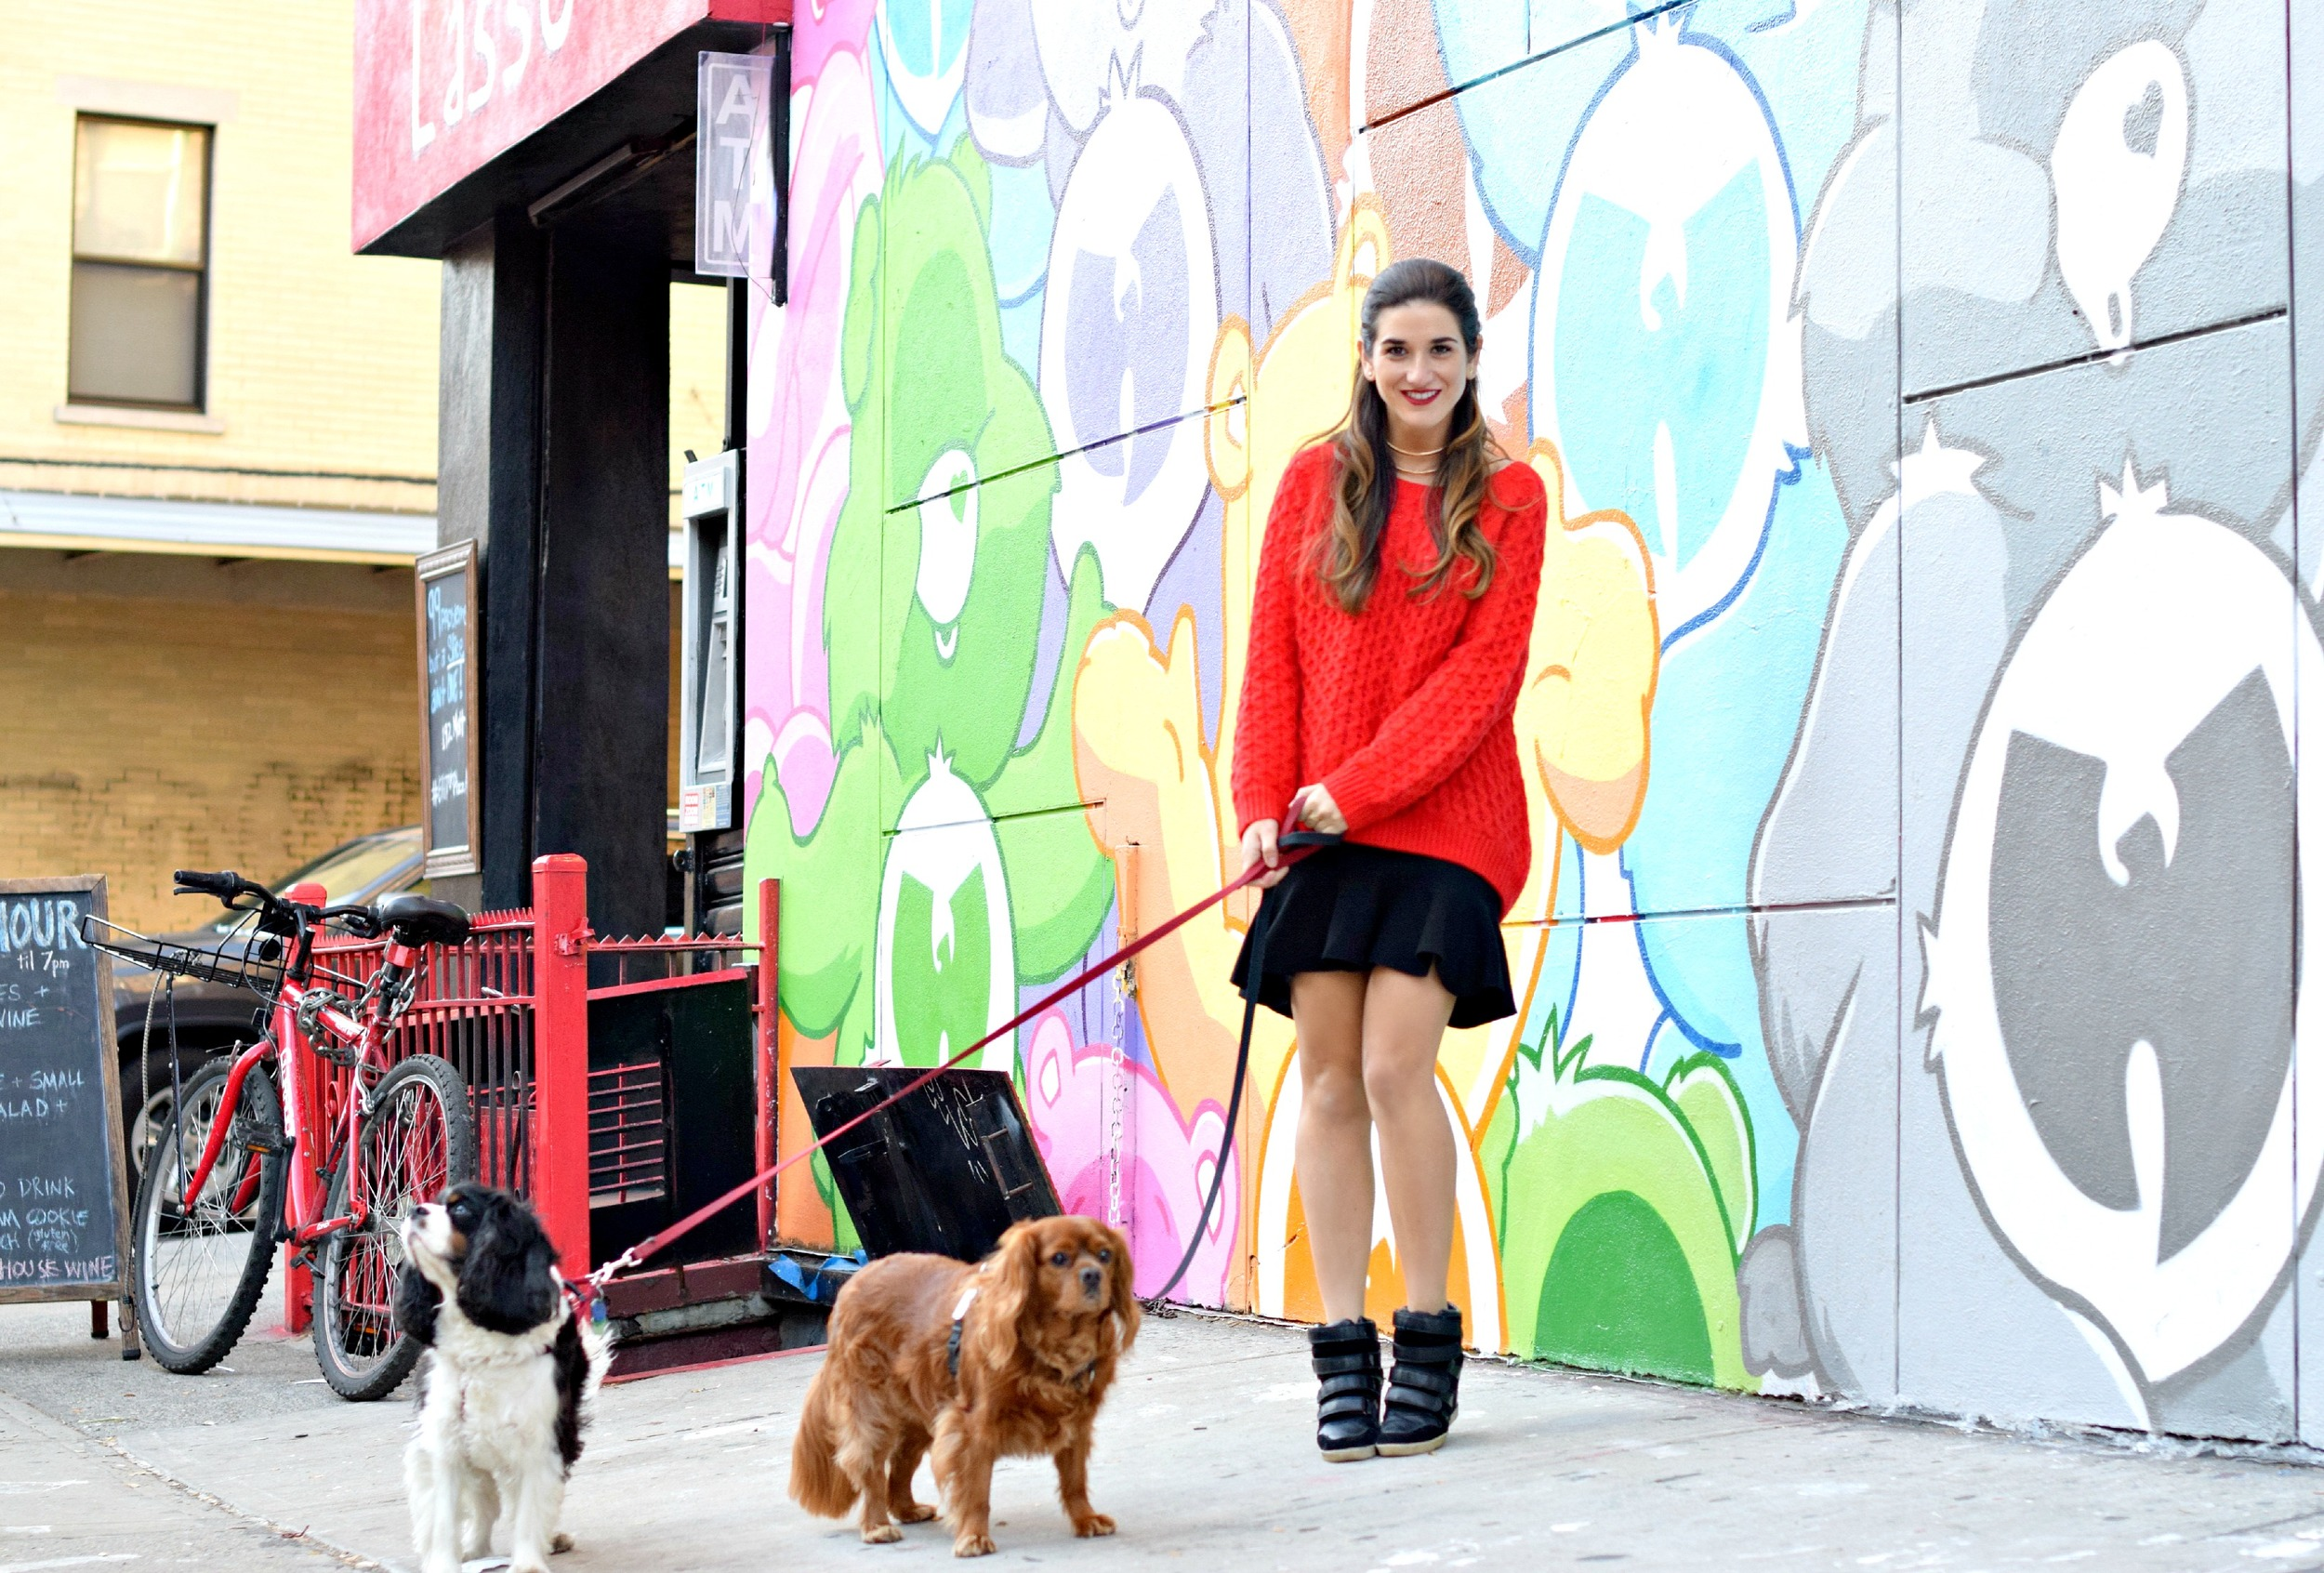 Red Sweater Black Ruffled Skirt Wow Couture Louboutins & Love Fashion Blog Esther Santer NYC Street Style Blogger Outfit OOTD Gold Collar Necklace Fall Winter Look Hair Inspo Inspiration How To Wear Shop Chunky Knits Women Girl Soho Photoshoot Wearing.jpg